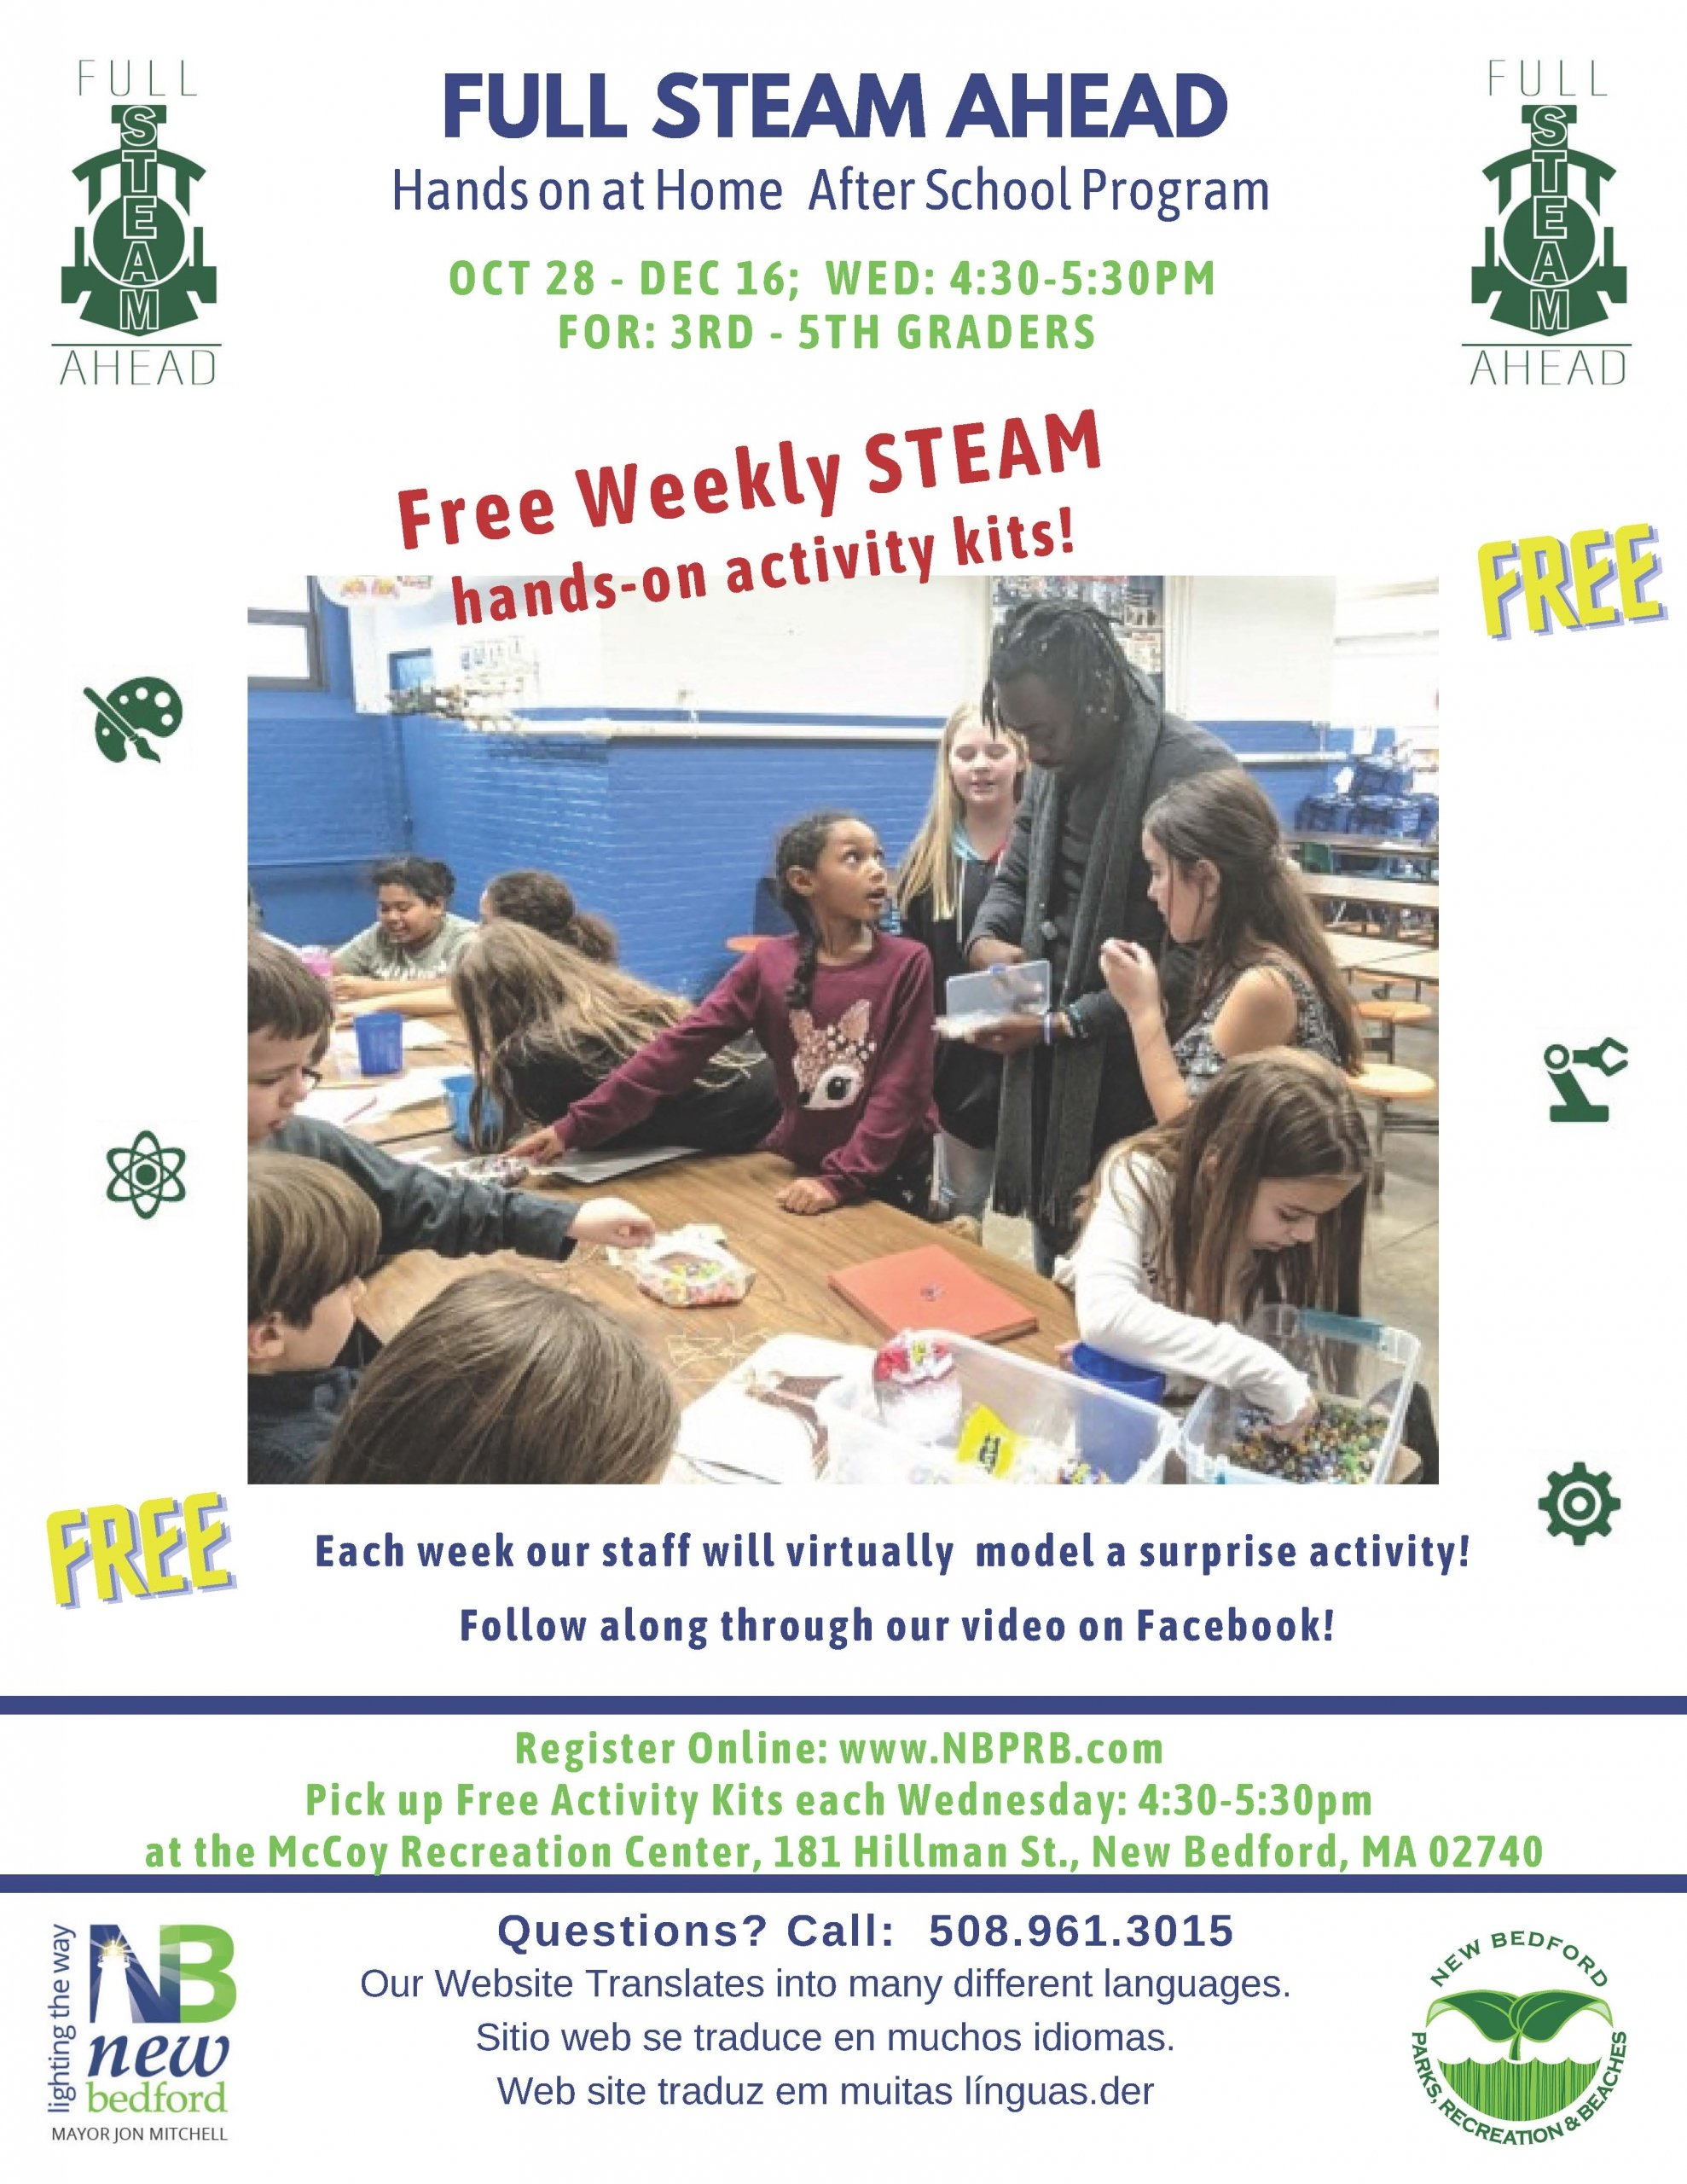 FULL STEAM AHEAD Hands on at Home After School Program